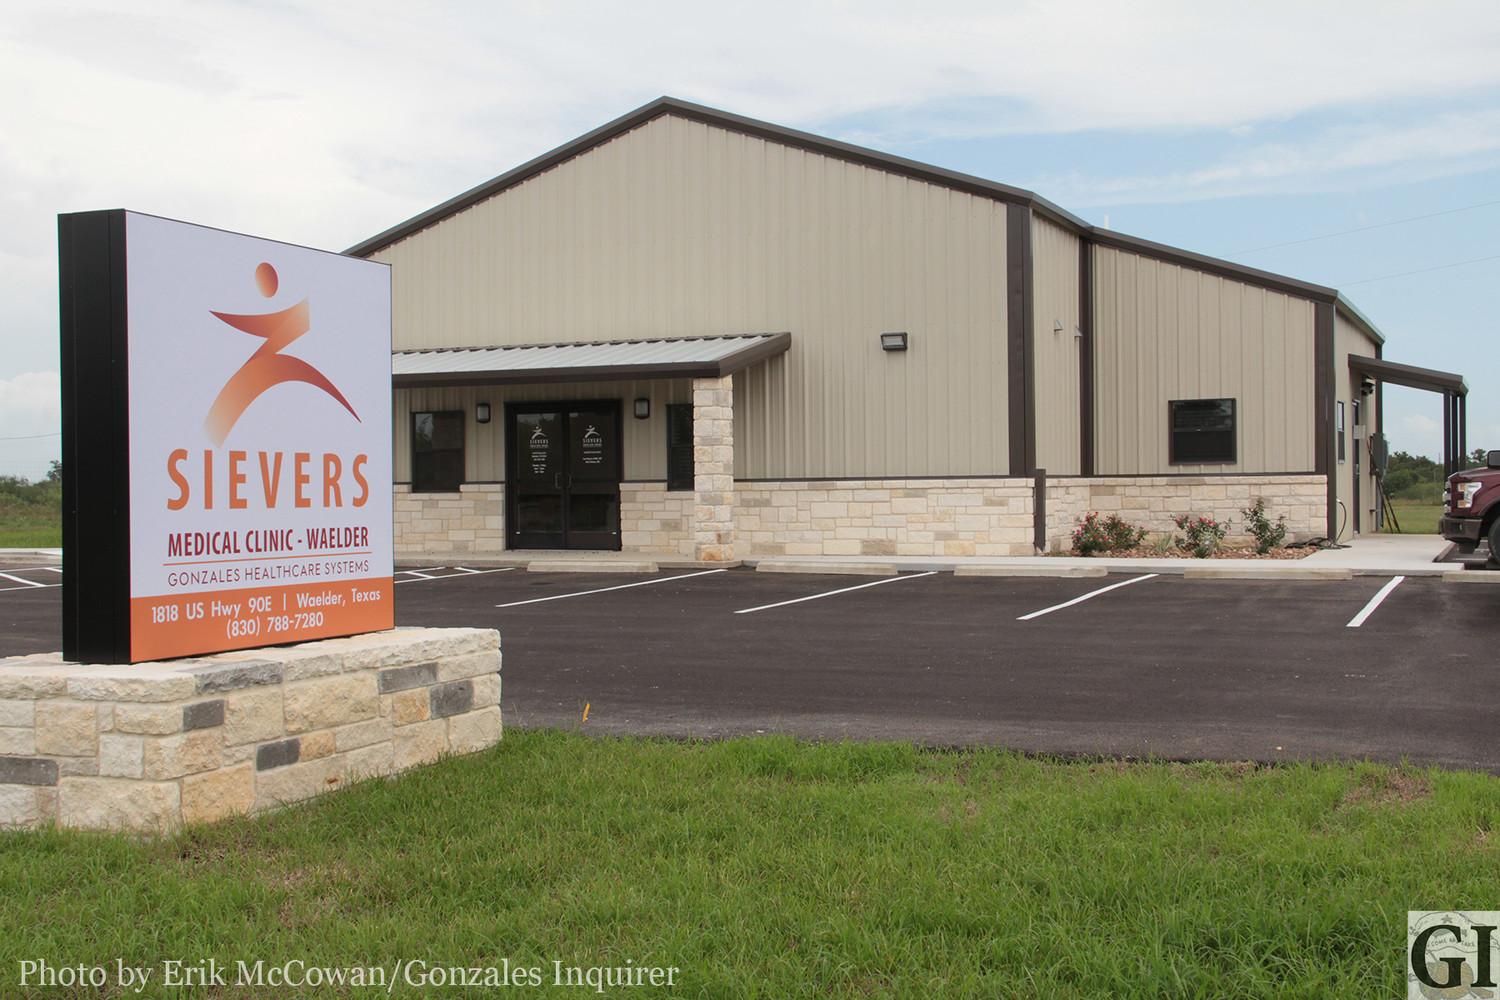 The new Waelder branch of the Sievers Medical Clinic is open for business. They perform a host of services, like well woman exams, well child visits, immunizations, prescription refills, preventative care, school physicals, and general sick care from infants to elderly.